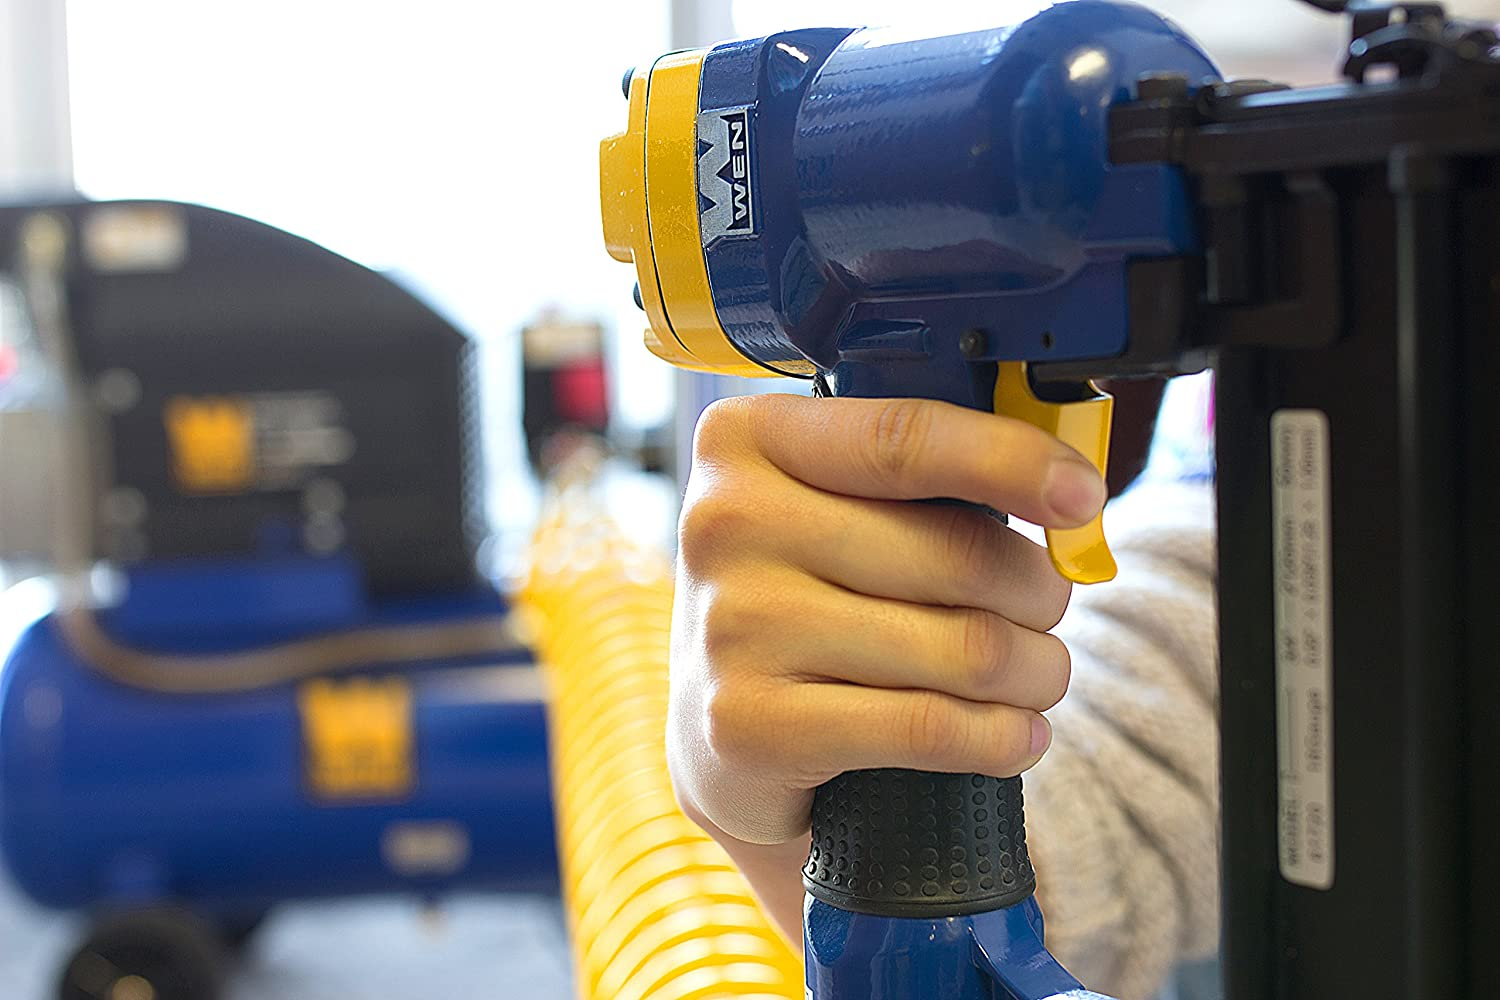 Best Brad Nailer Reviews and Buying Guide 2019 8